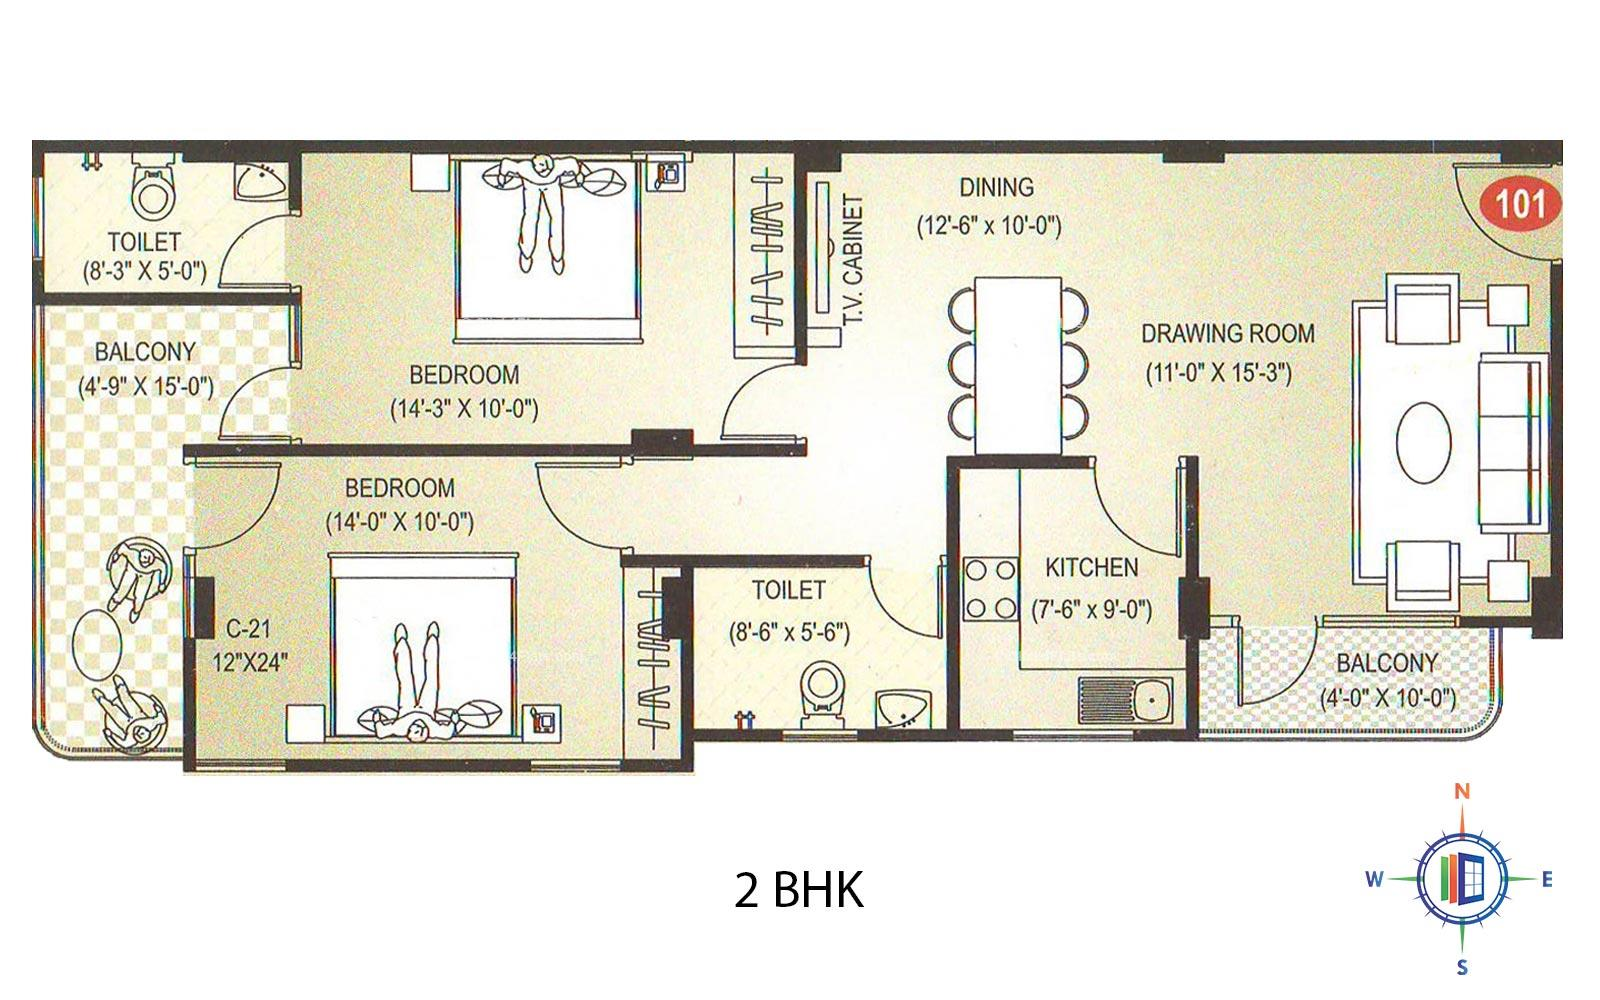 Diamond Residency 2 BHK